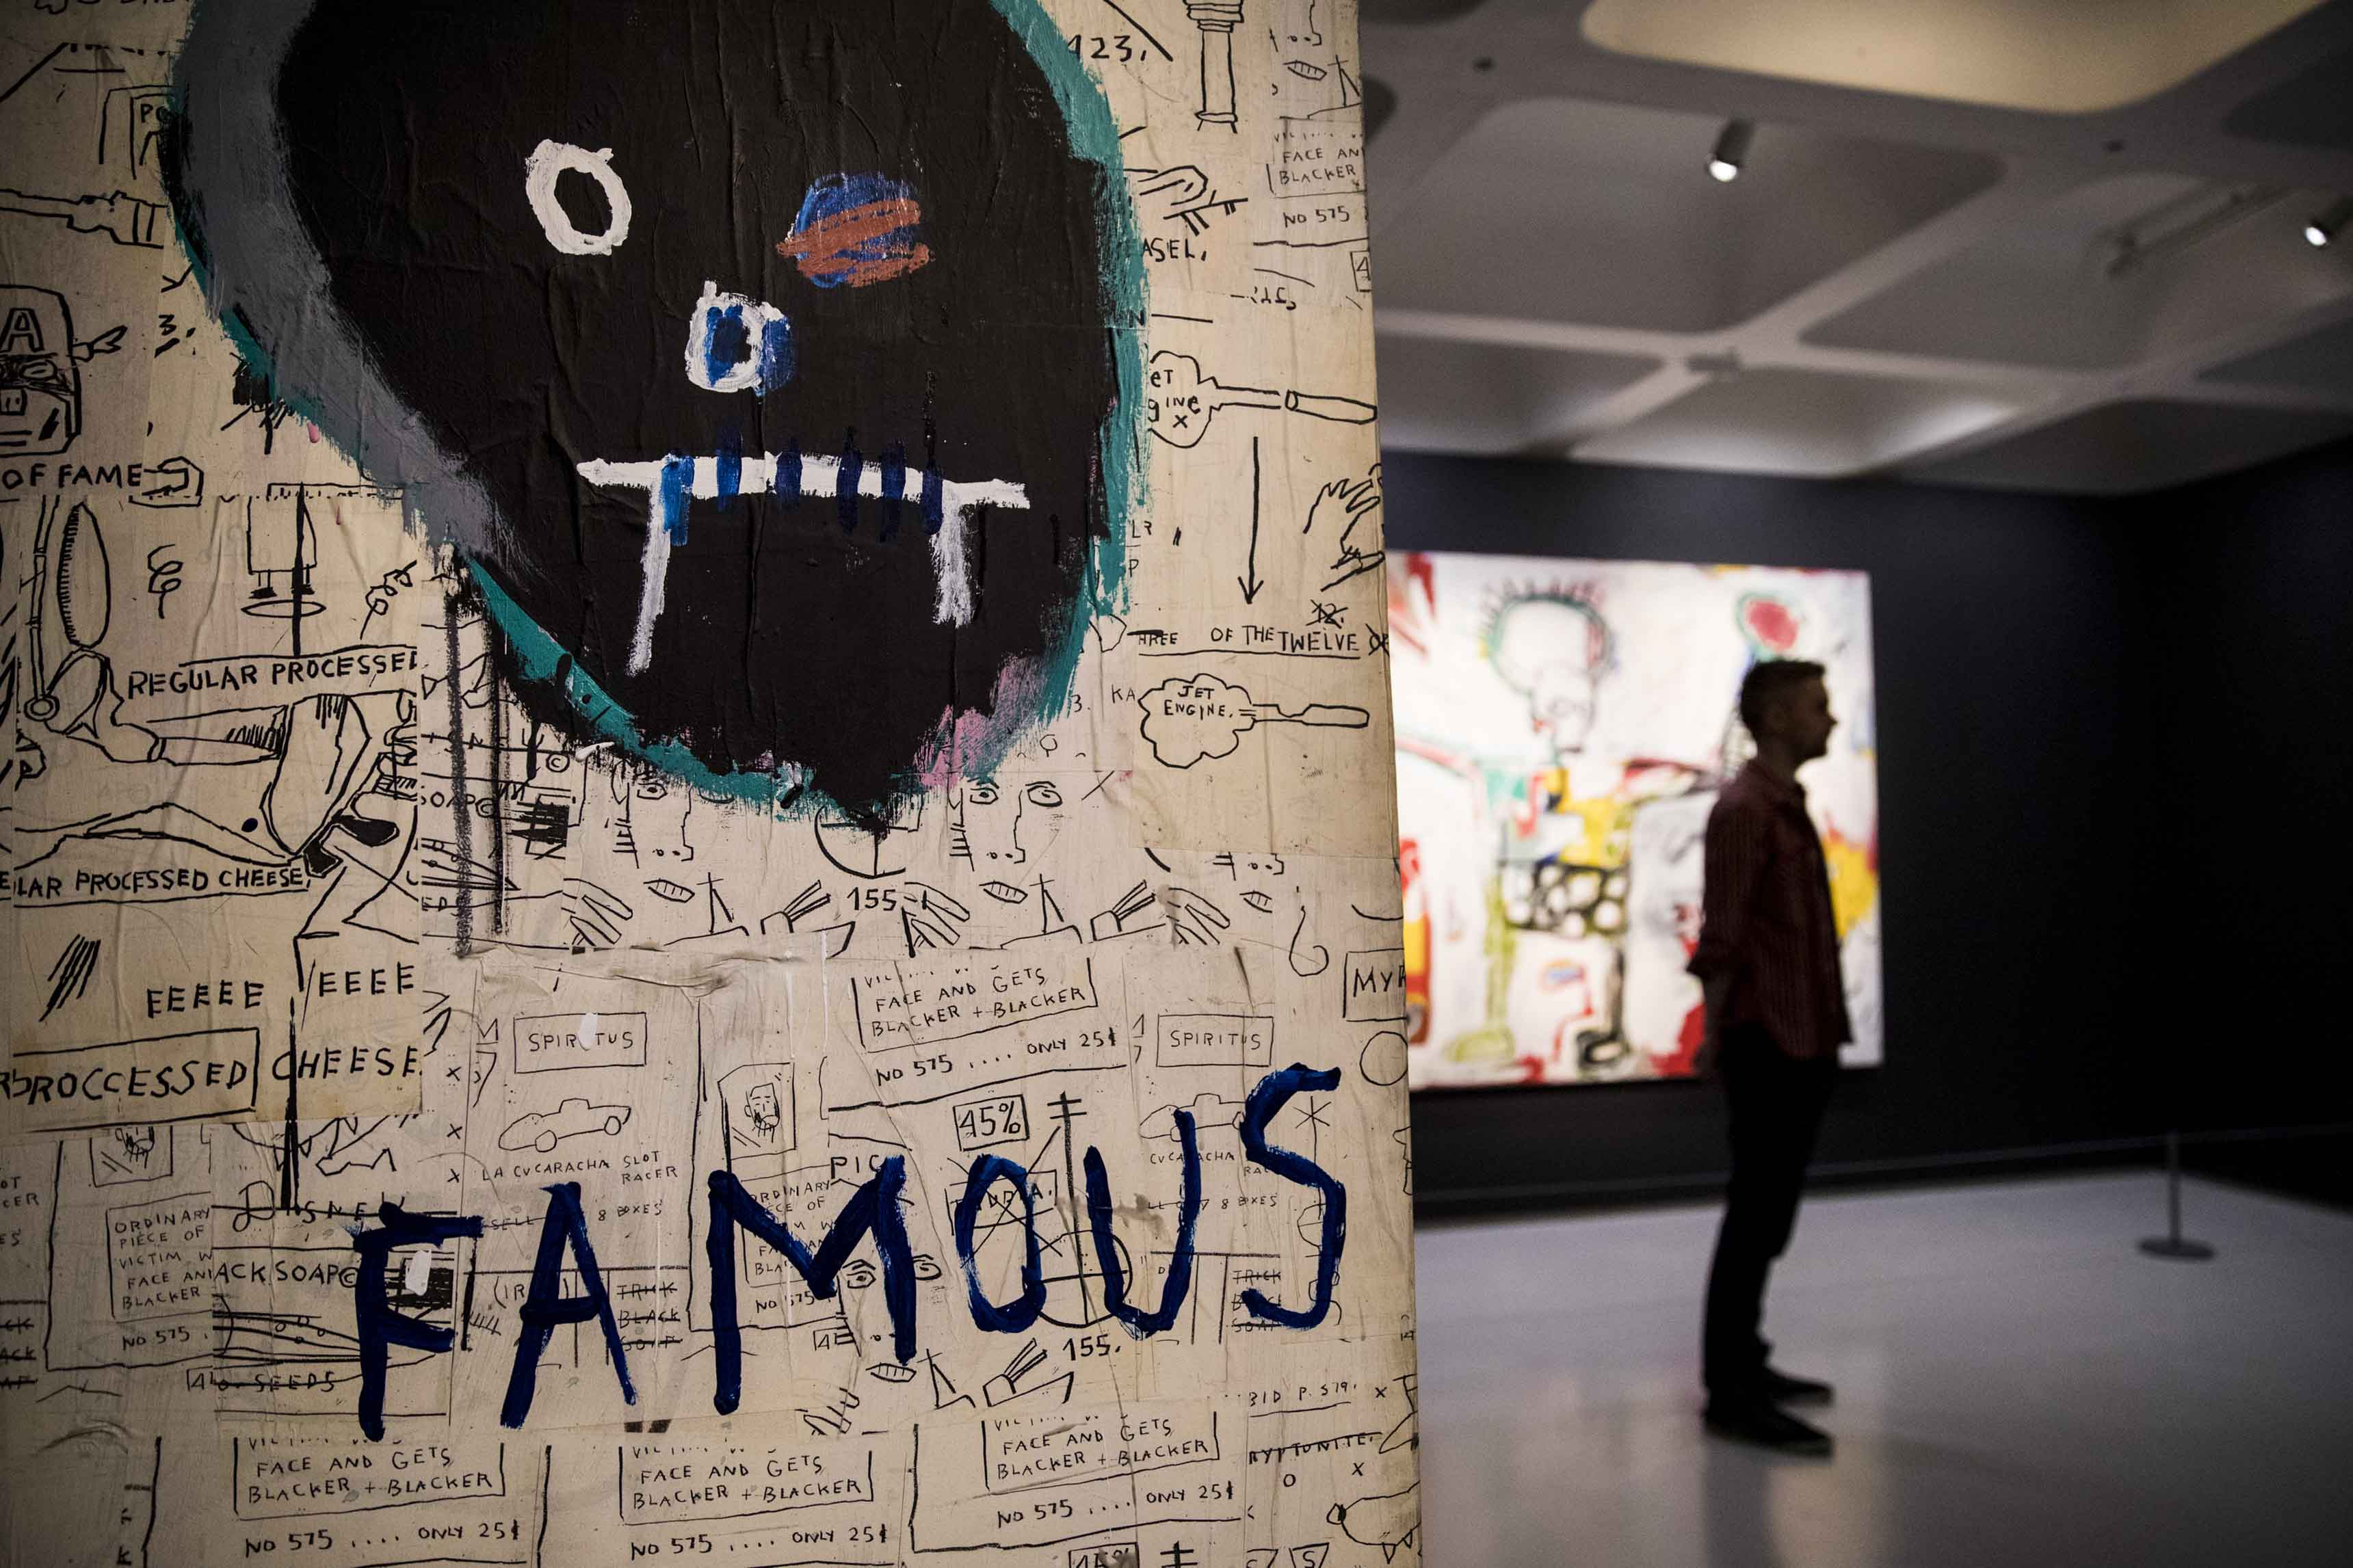 Basquiat: Boom For Real Installation view Barbican Art Gallery 21 September 2017 – 28 January 2018 © Tristan Fewings / Getty Images Artwork: Jean-Michel Basquiat, Famous, 1982 Private collection. Courtesy of Lio Malca, New York © The Estate of Jean-Michel Basquiat. Licensed by Artestar, New York